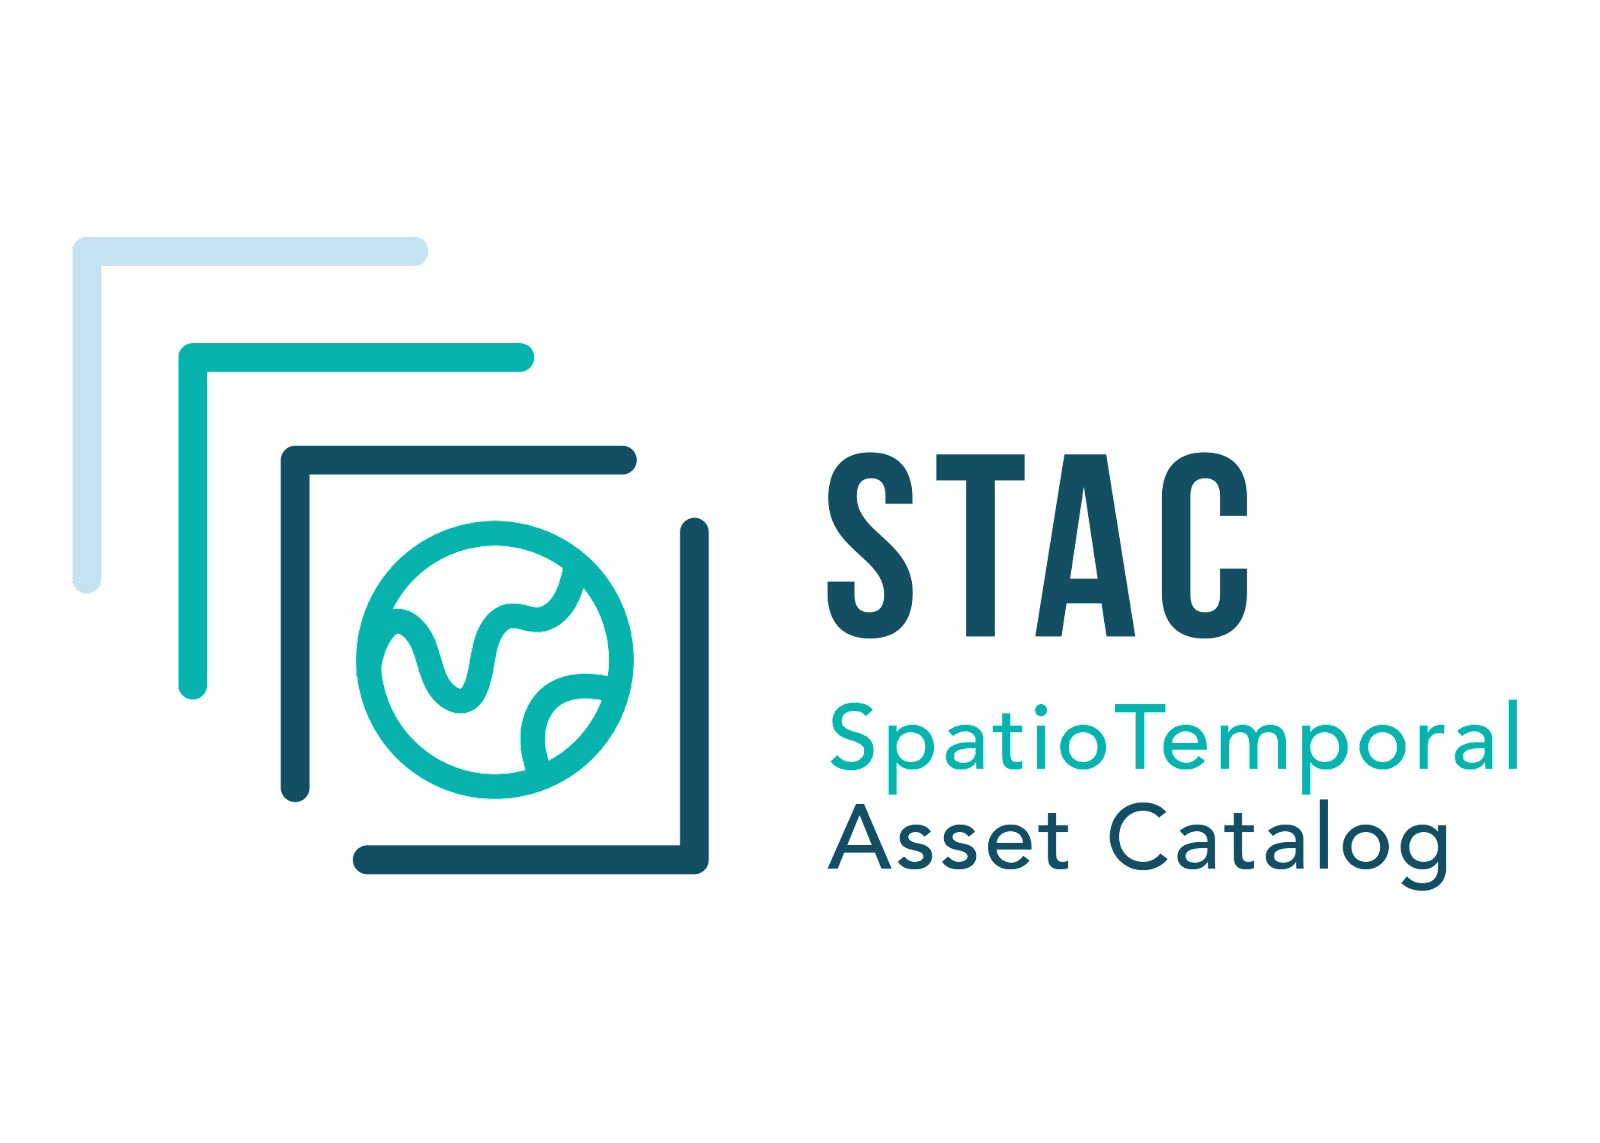 A logo for the STAC catalog.